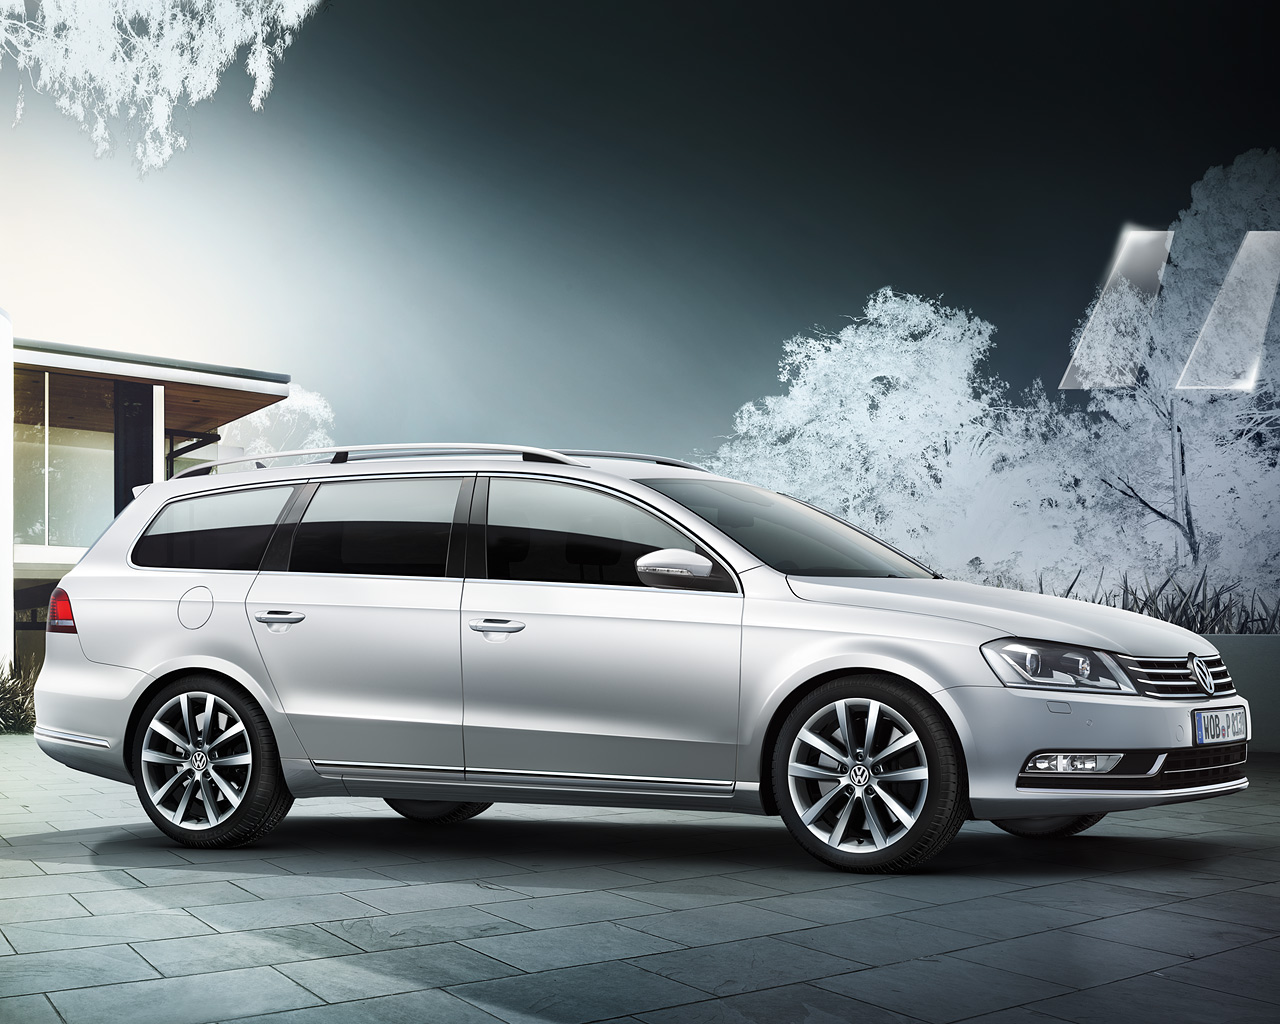 2013 volkswagen passat variant b7 pictures information and specs auto. Black Bedroom Furniture Sets. Home Design Ideas